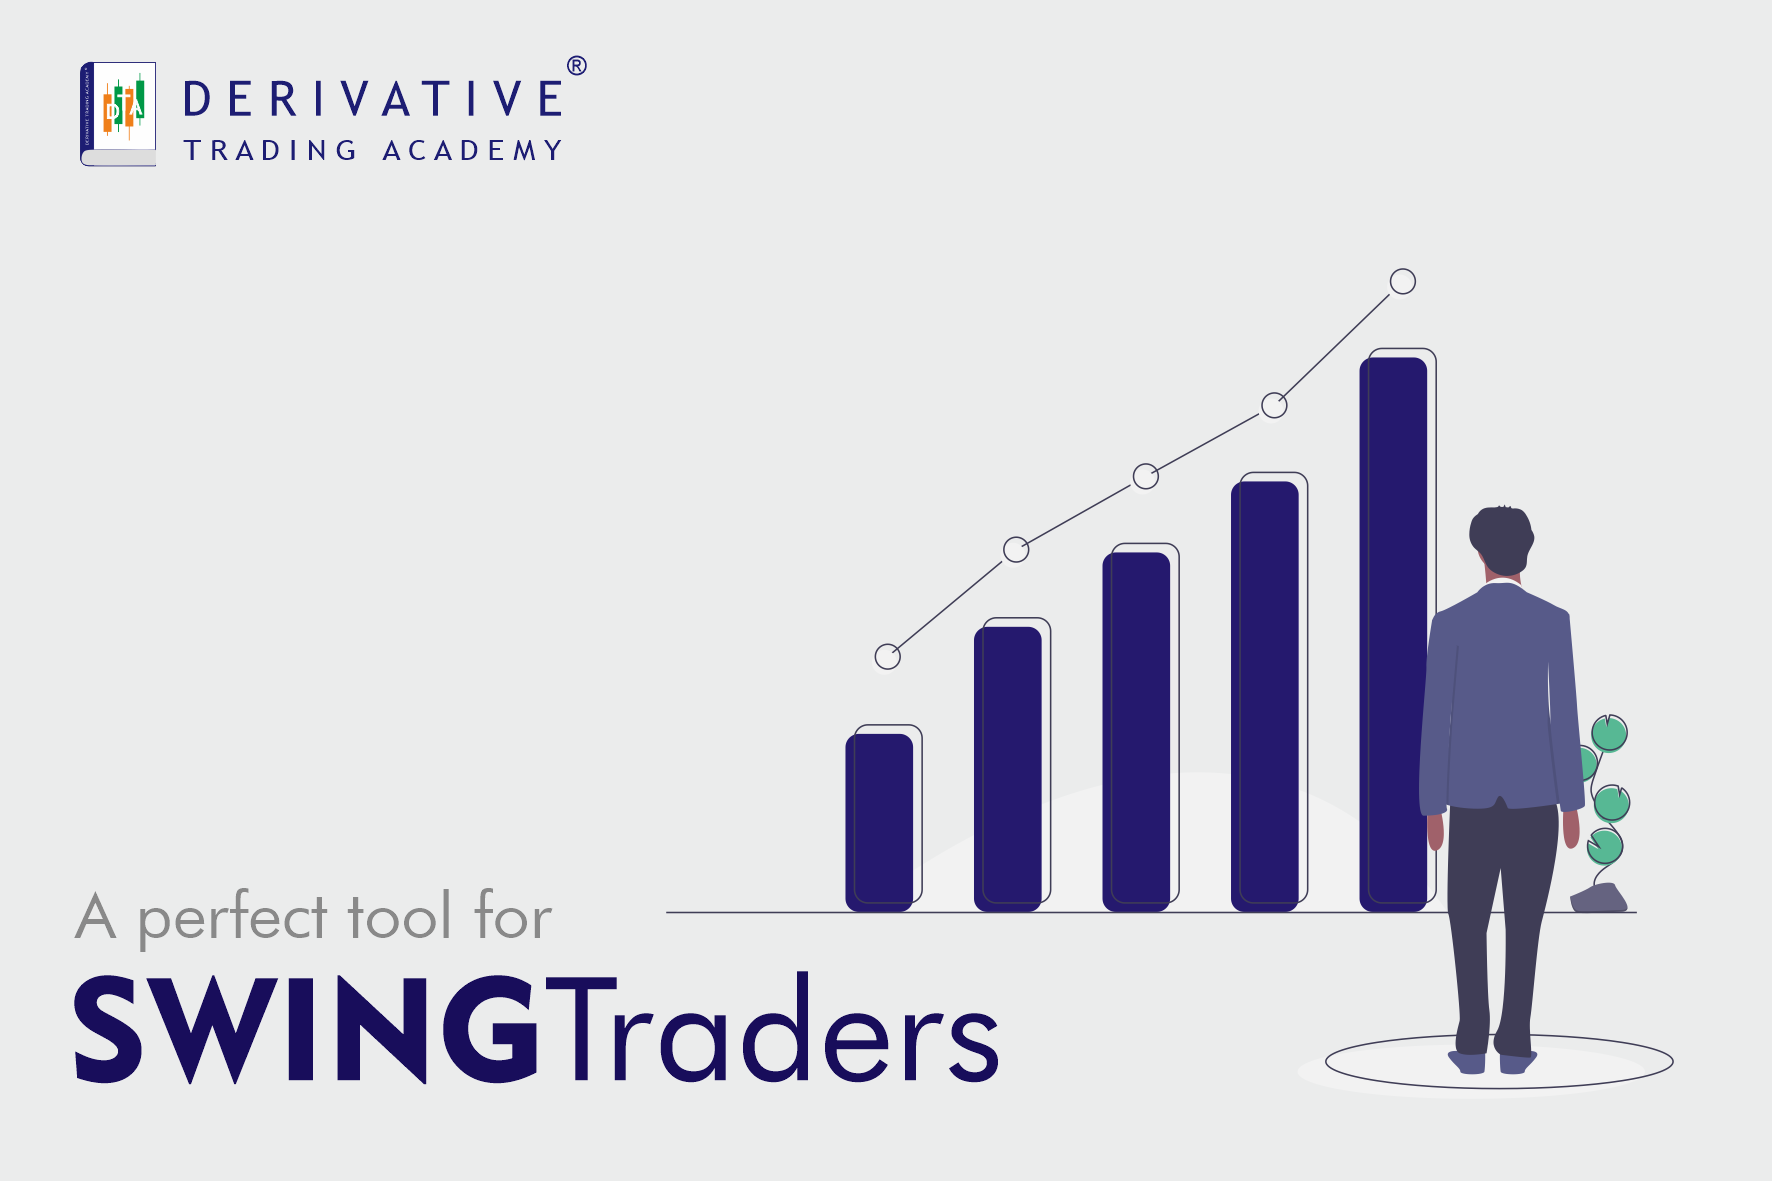 A Perfect tool for Swing Traders! | Derivative Trading Academy